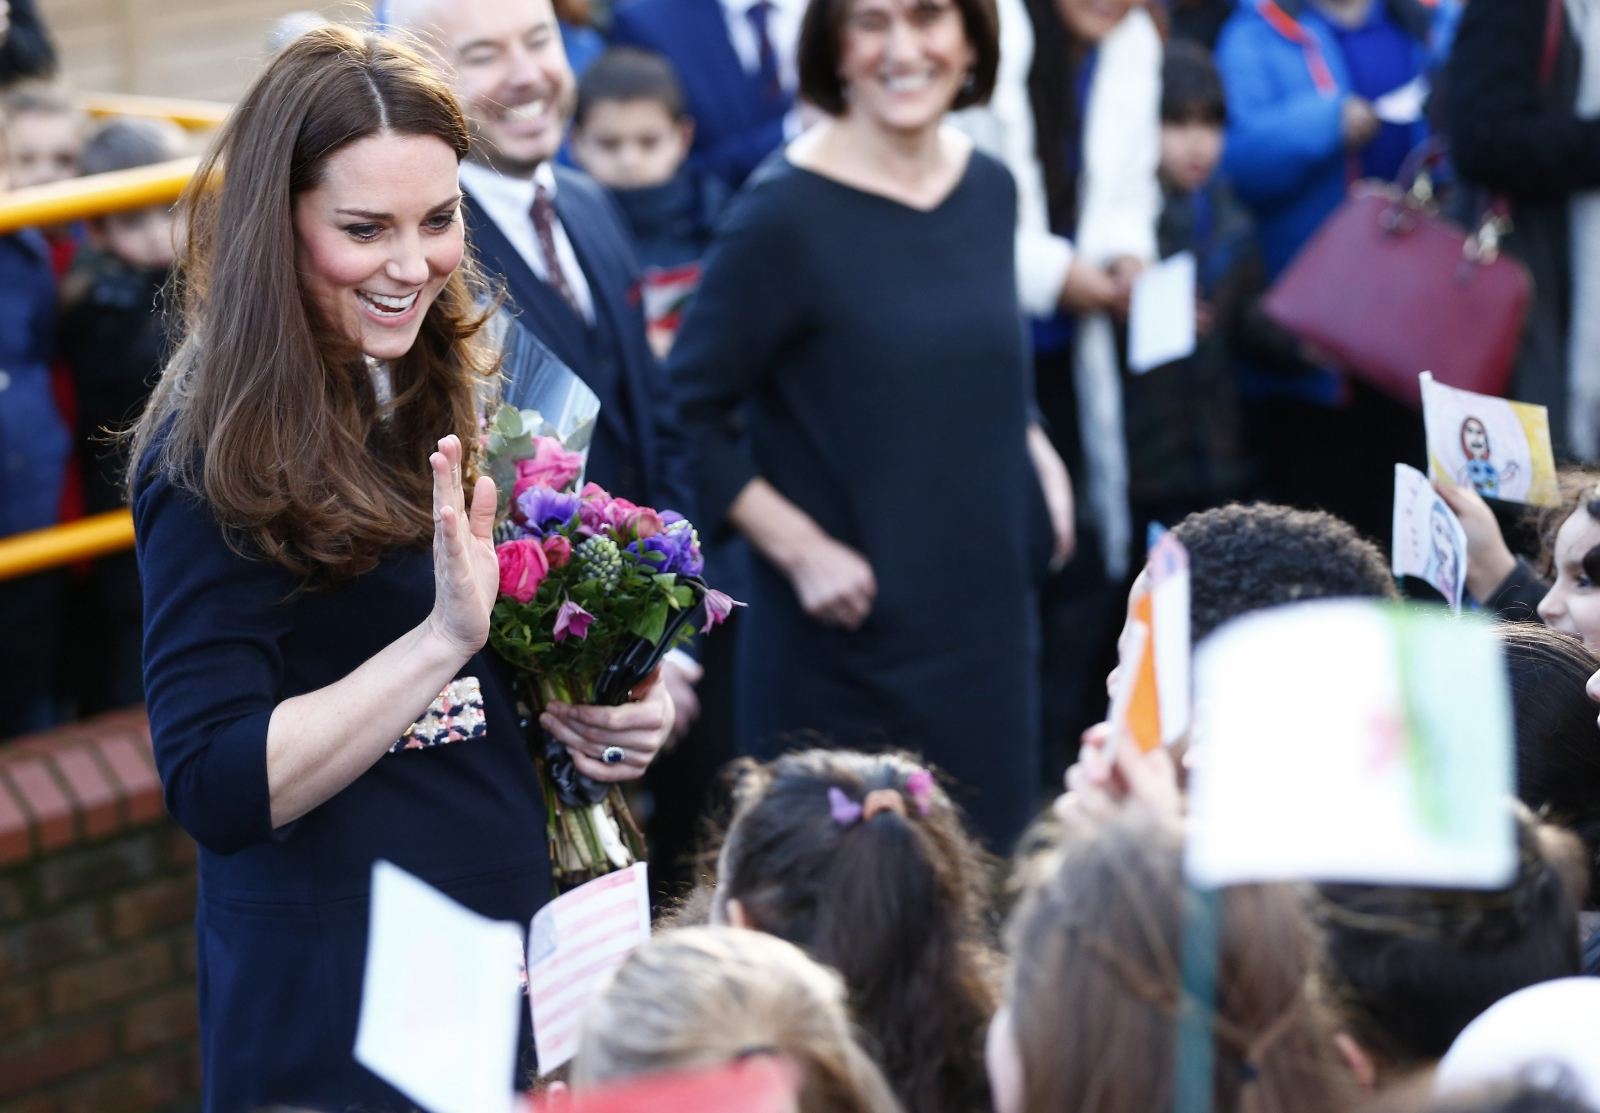 Duchess of Cambridge shows off beginnings of baby bump during school visit